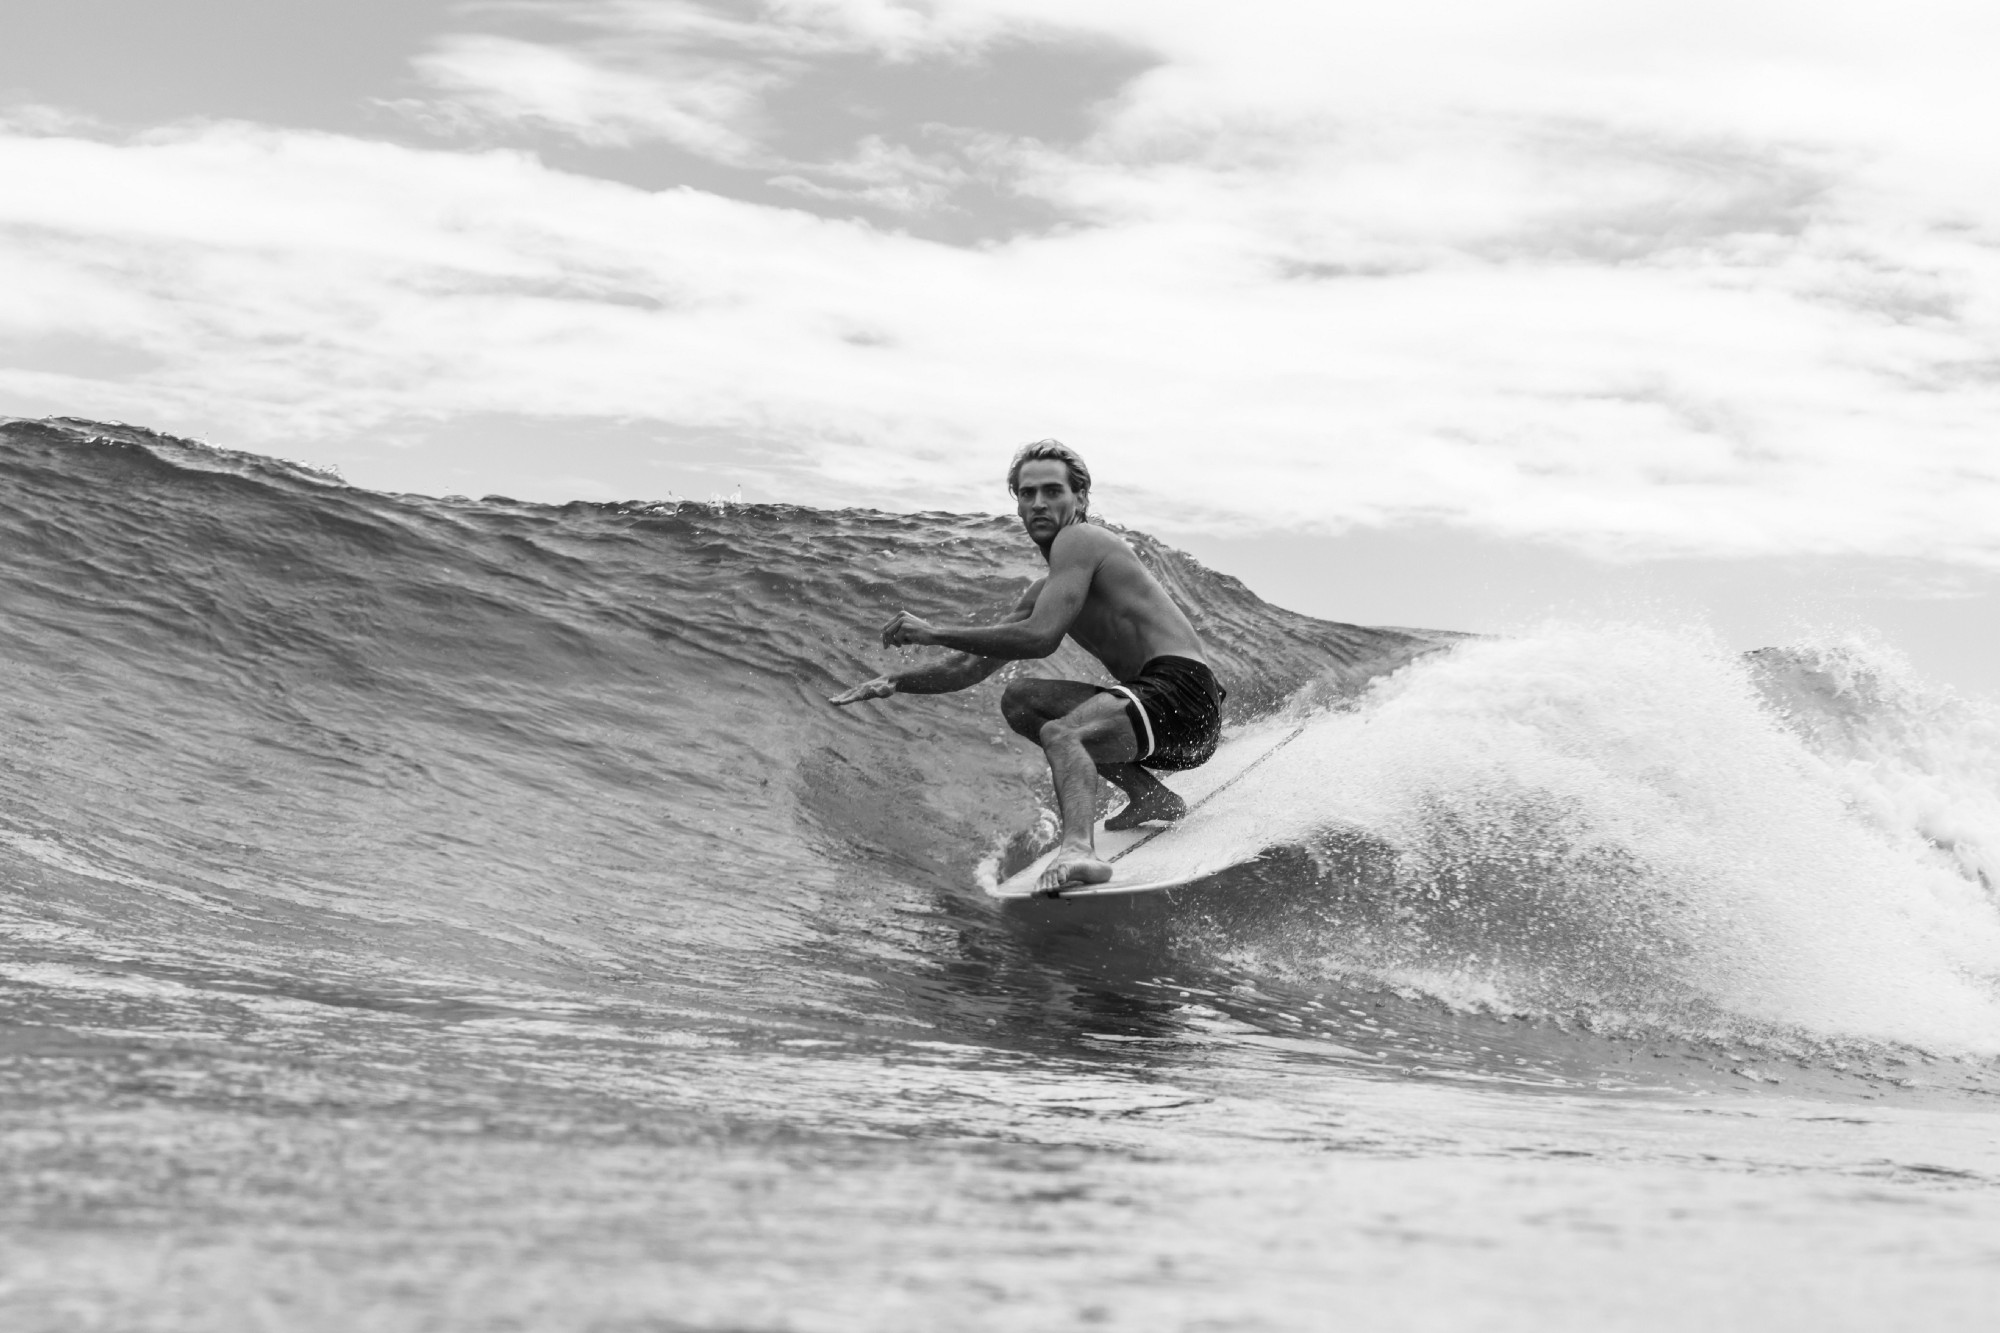 Black and white image of a shirtless muscular surfer